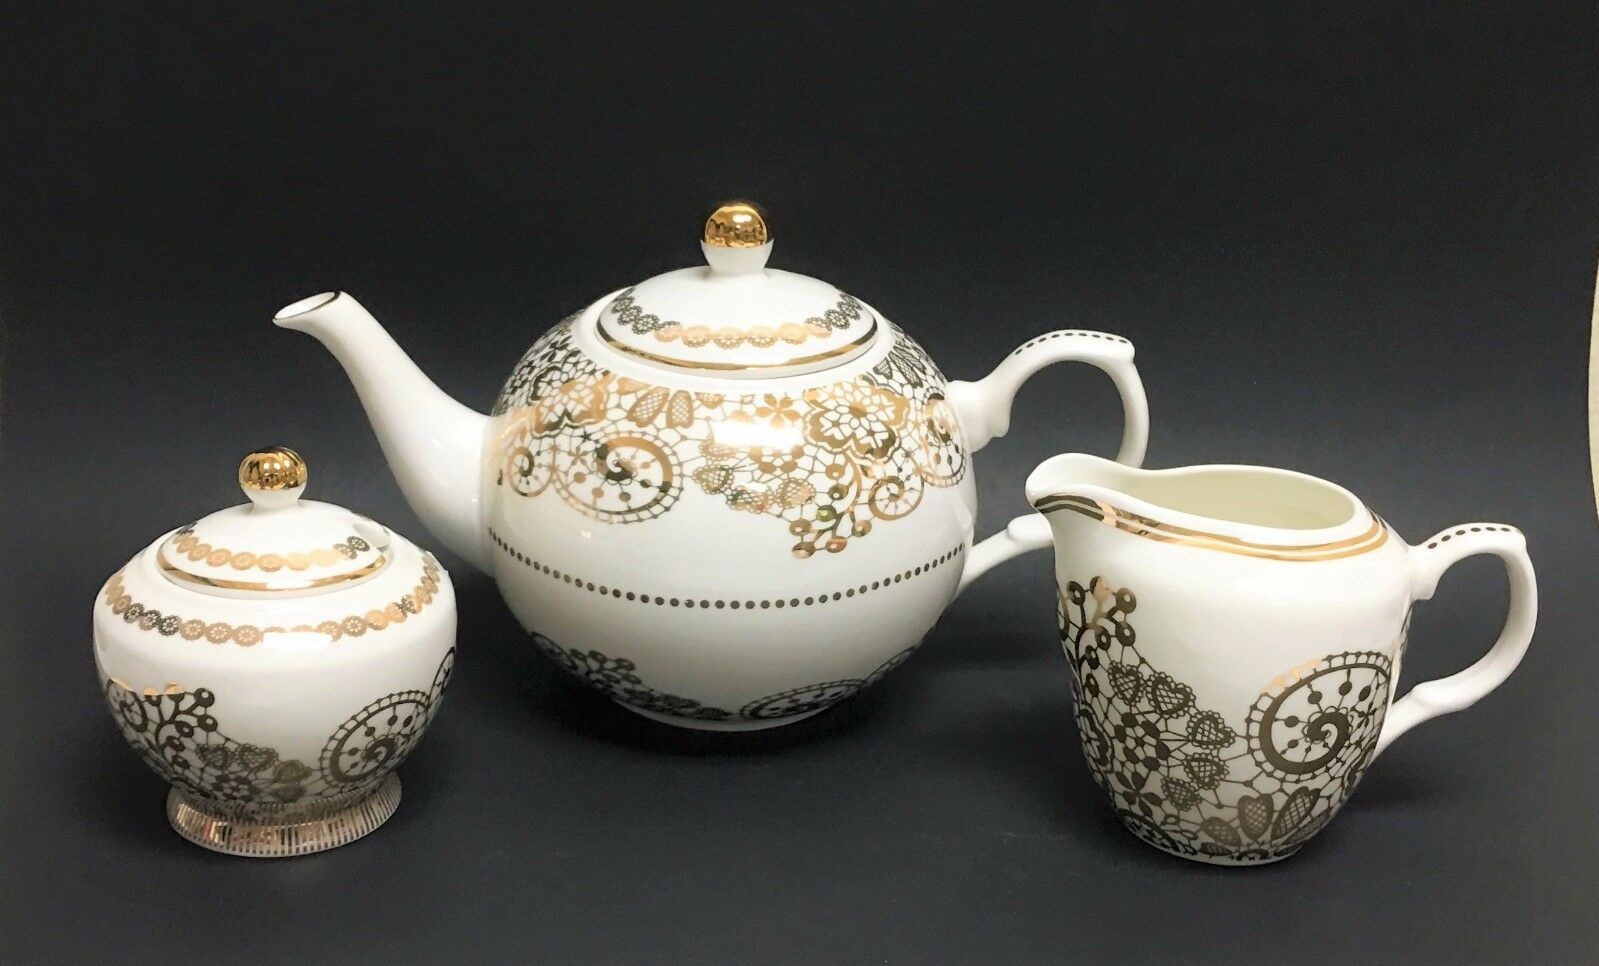 NEW 3 PC SET GRACE'S TEA WARE WHITE+gold TRIM TEAPOT+COFFEE POT,CREAMER,SUGAR